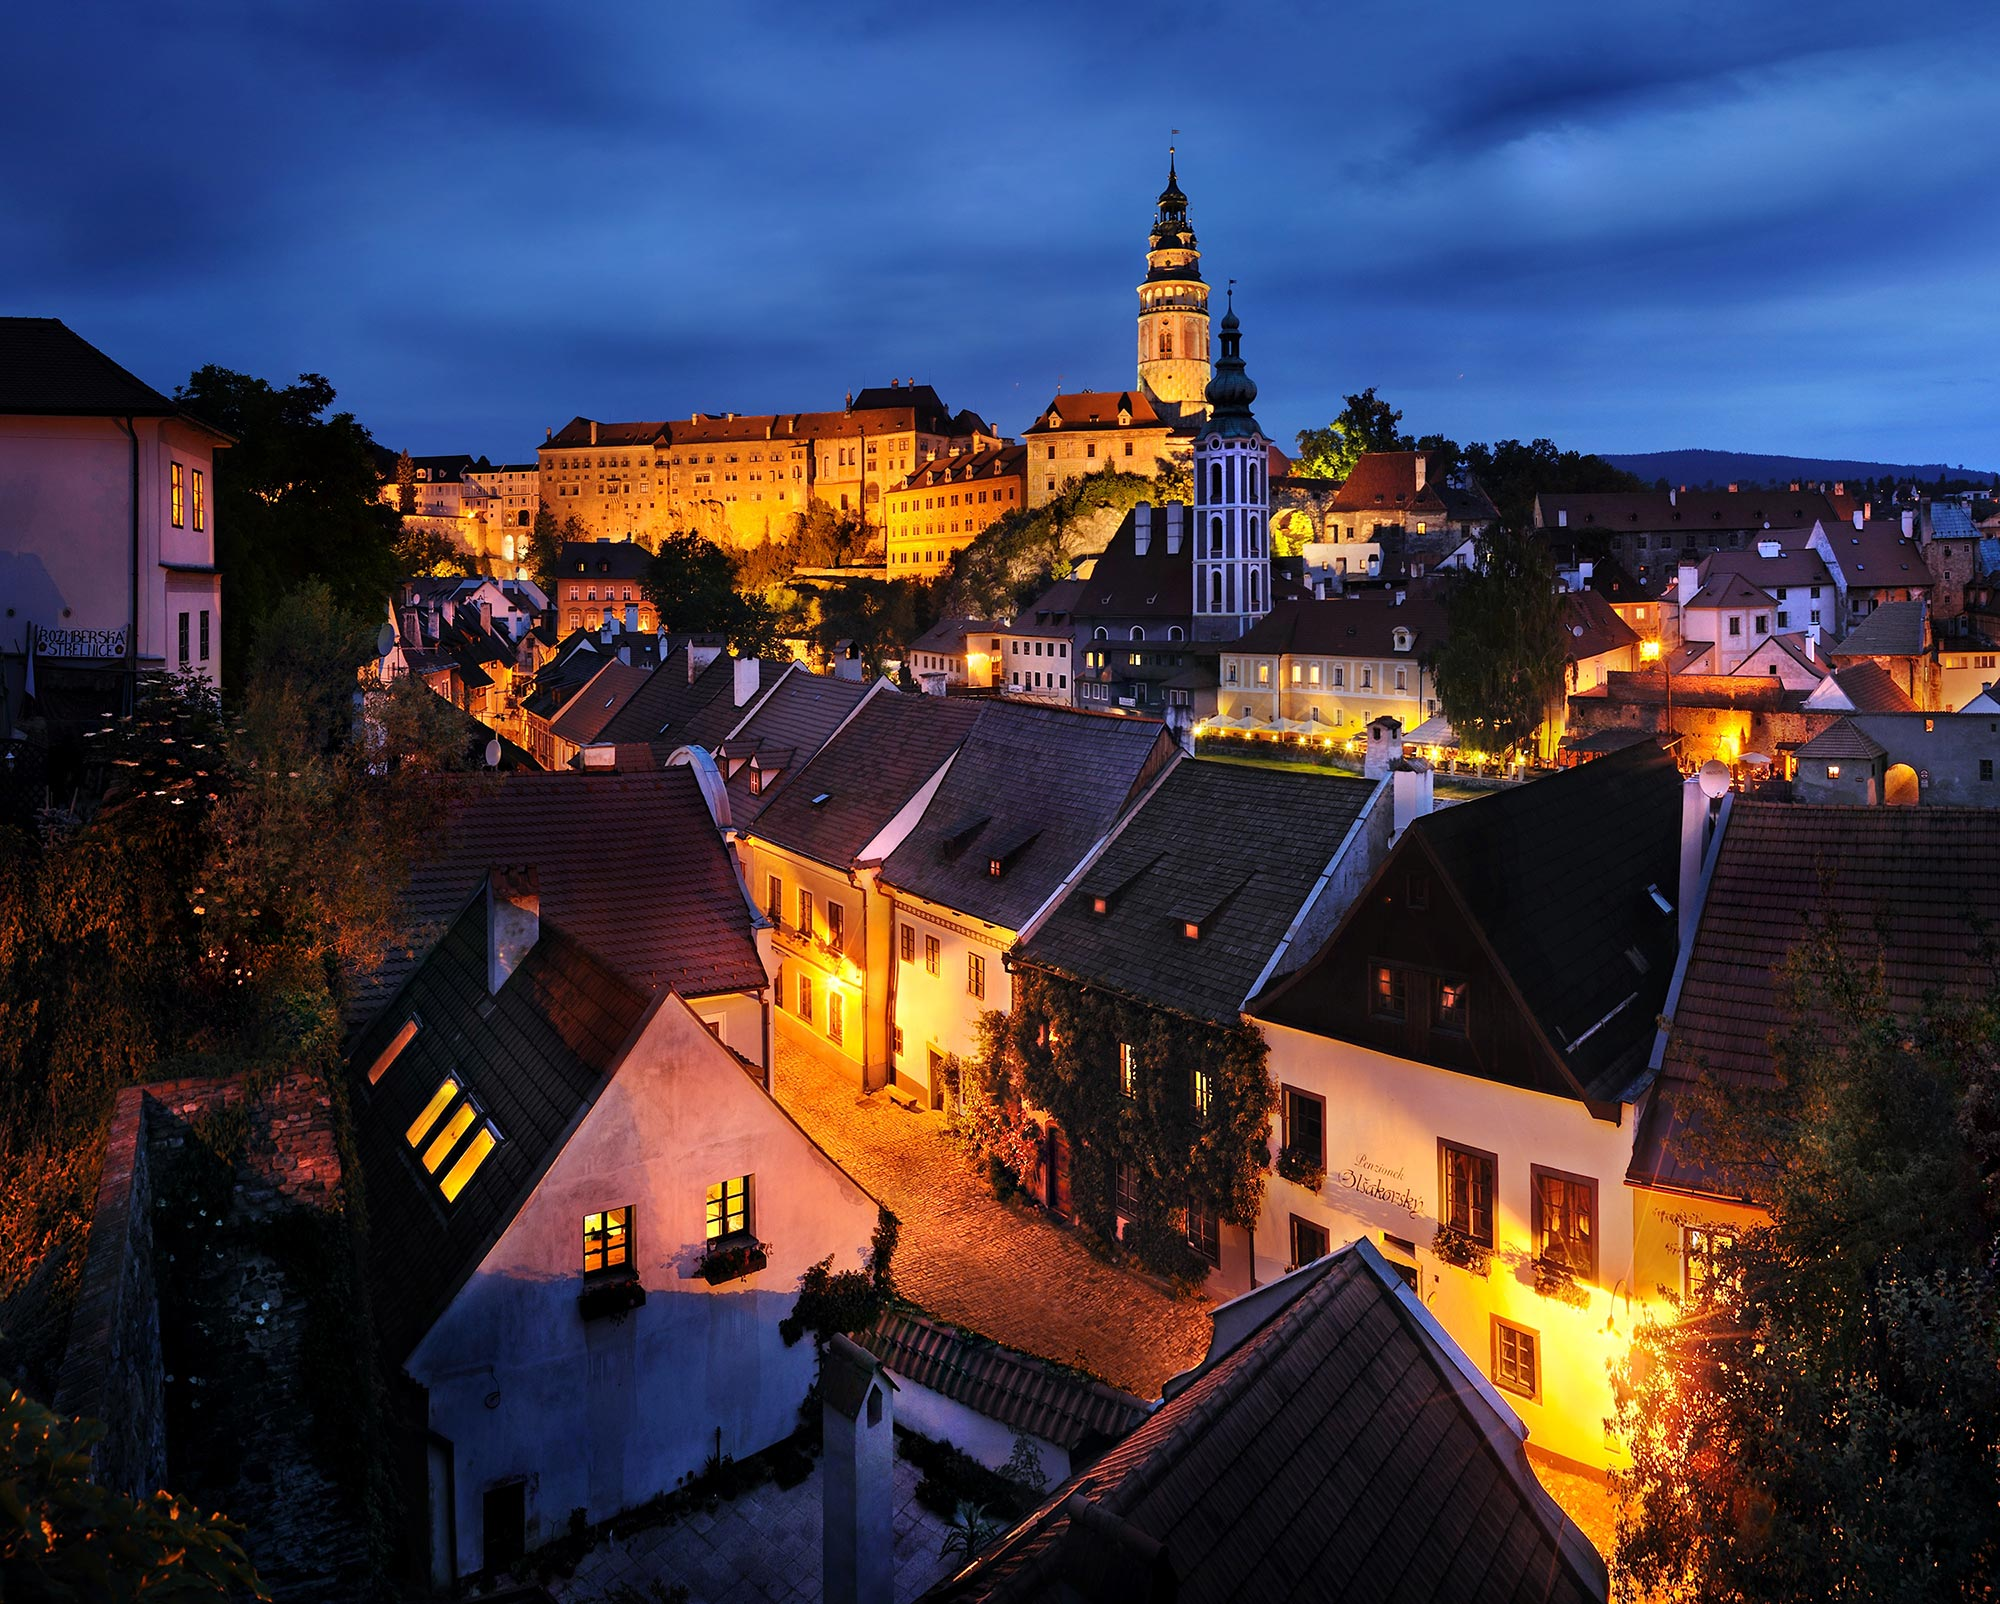 The Charming and magical Czech Republic